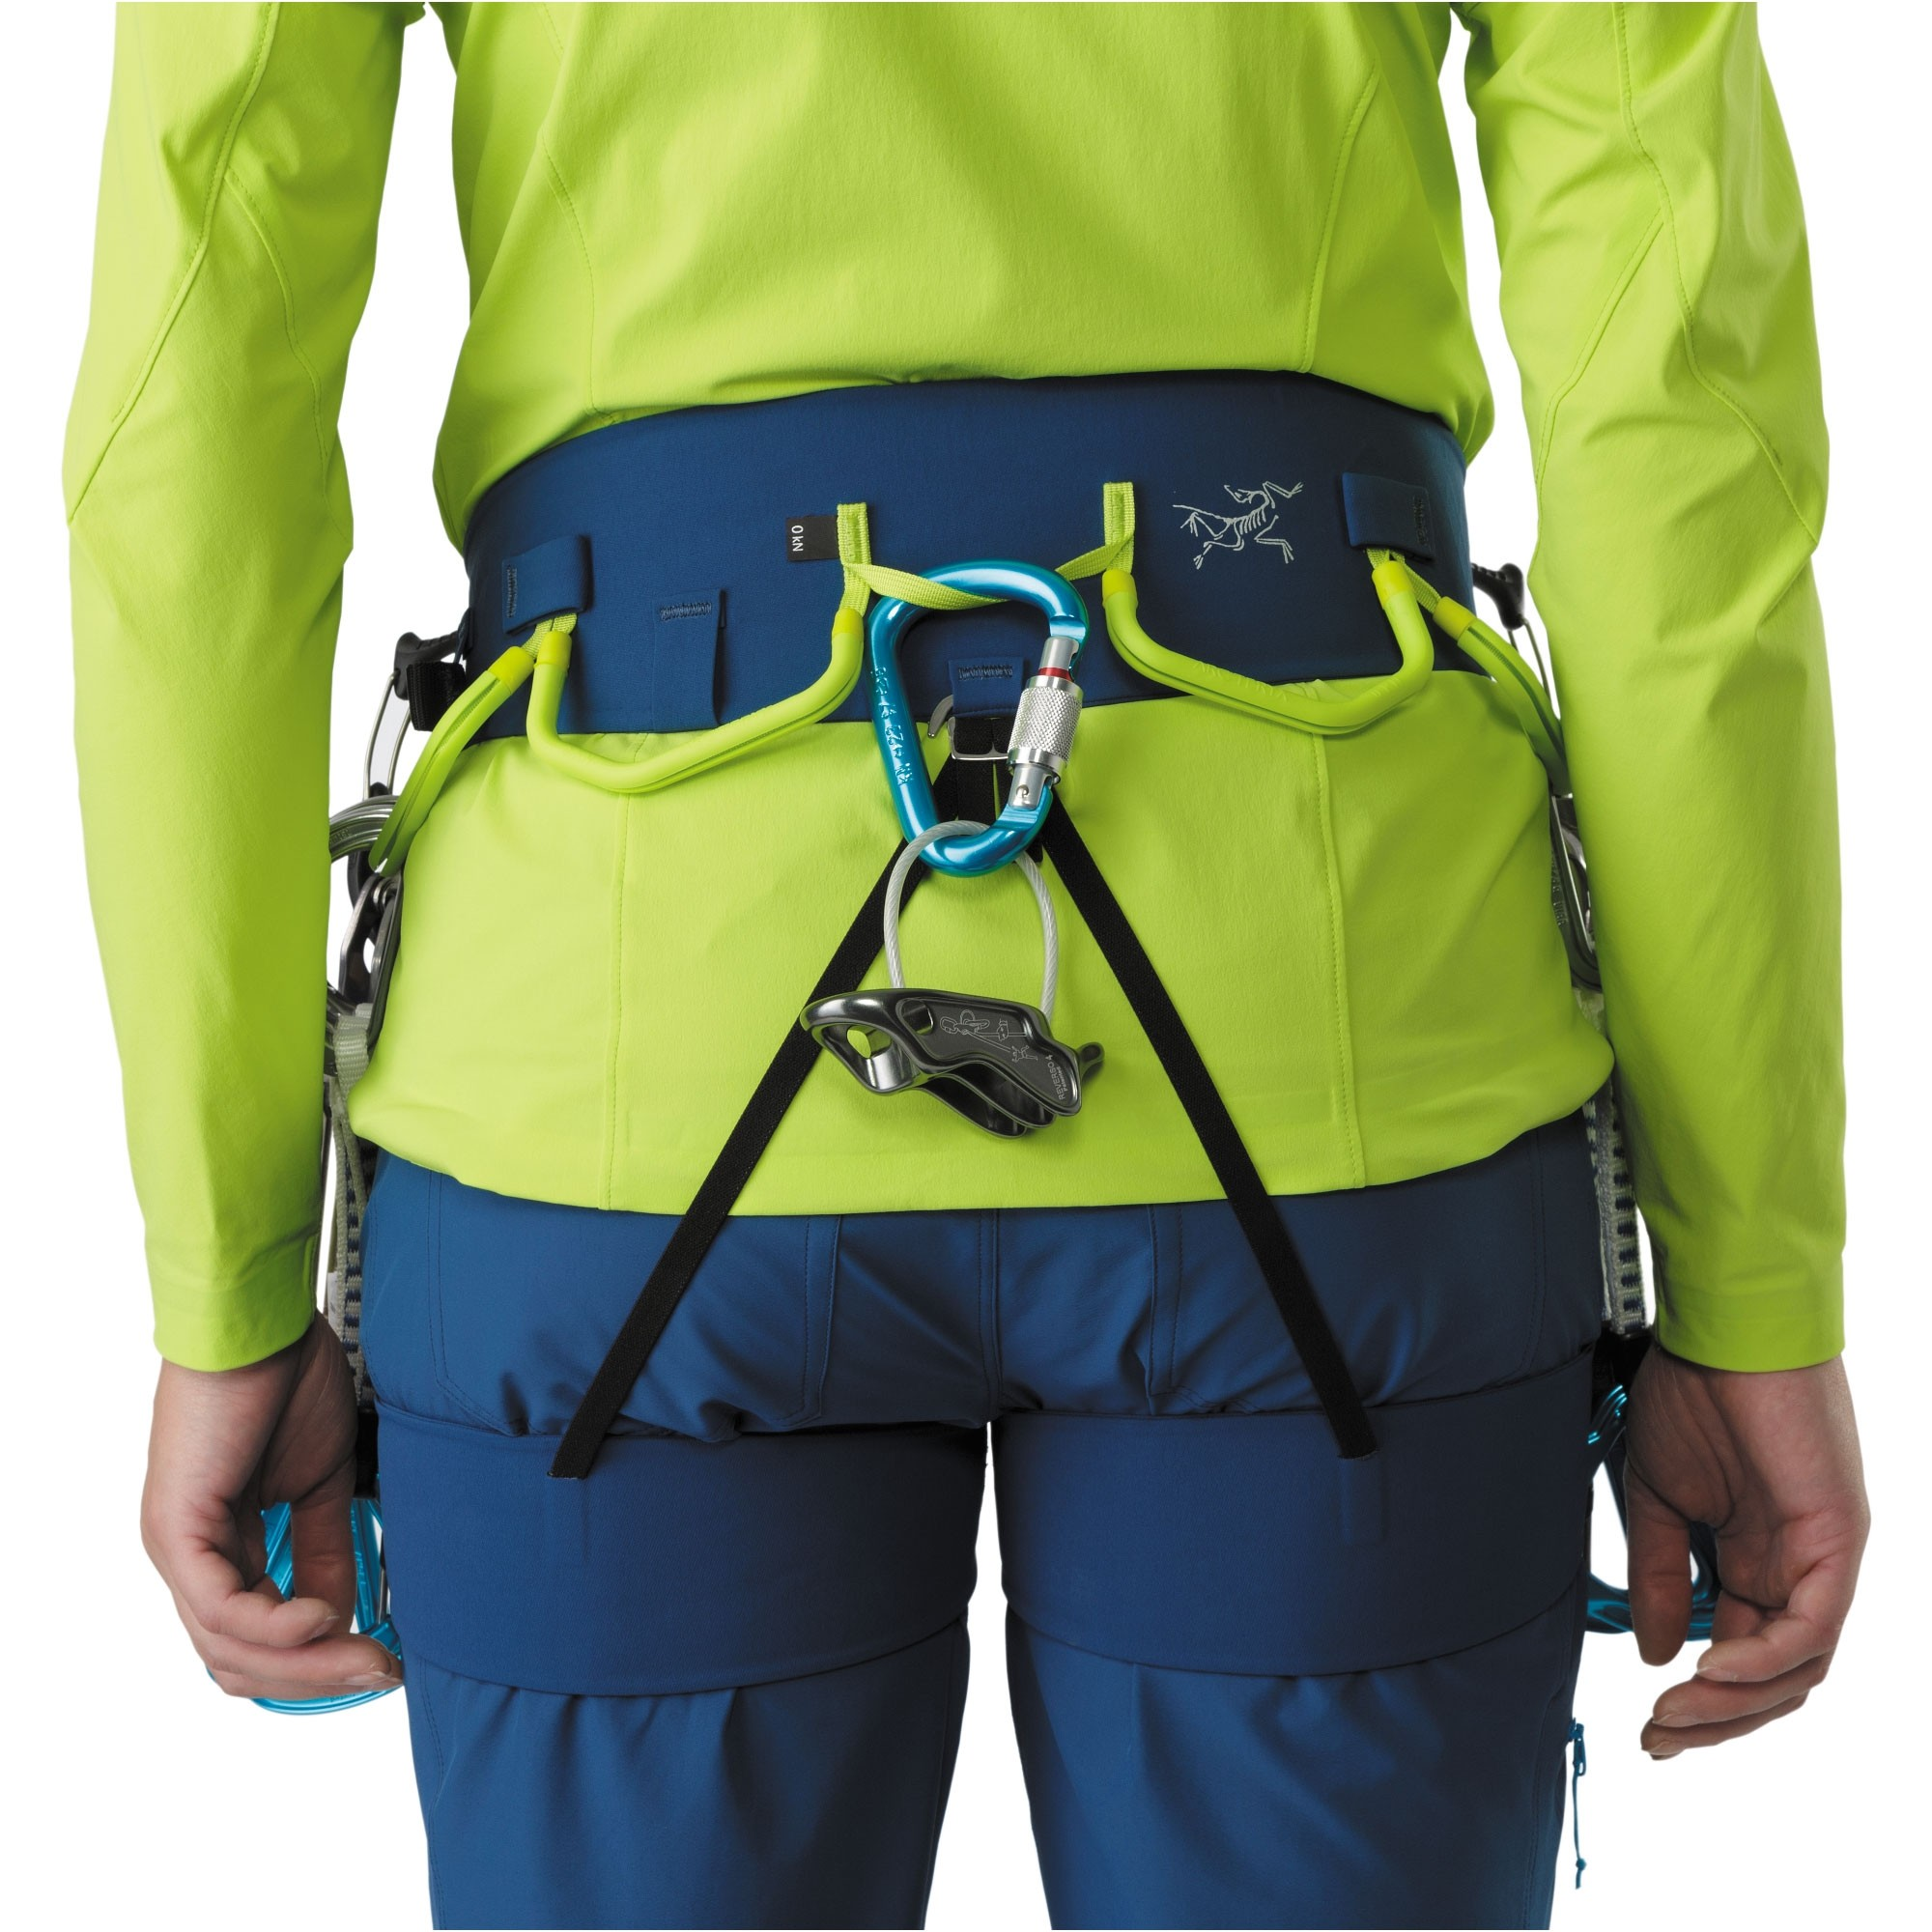 Arcteryx-15995-FL-355-Harness-W-Poseidon-Titanite-back-S18